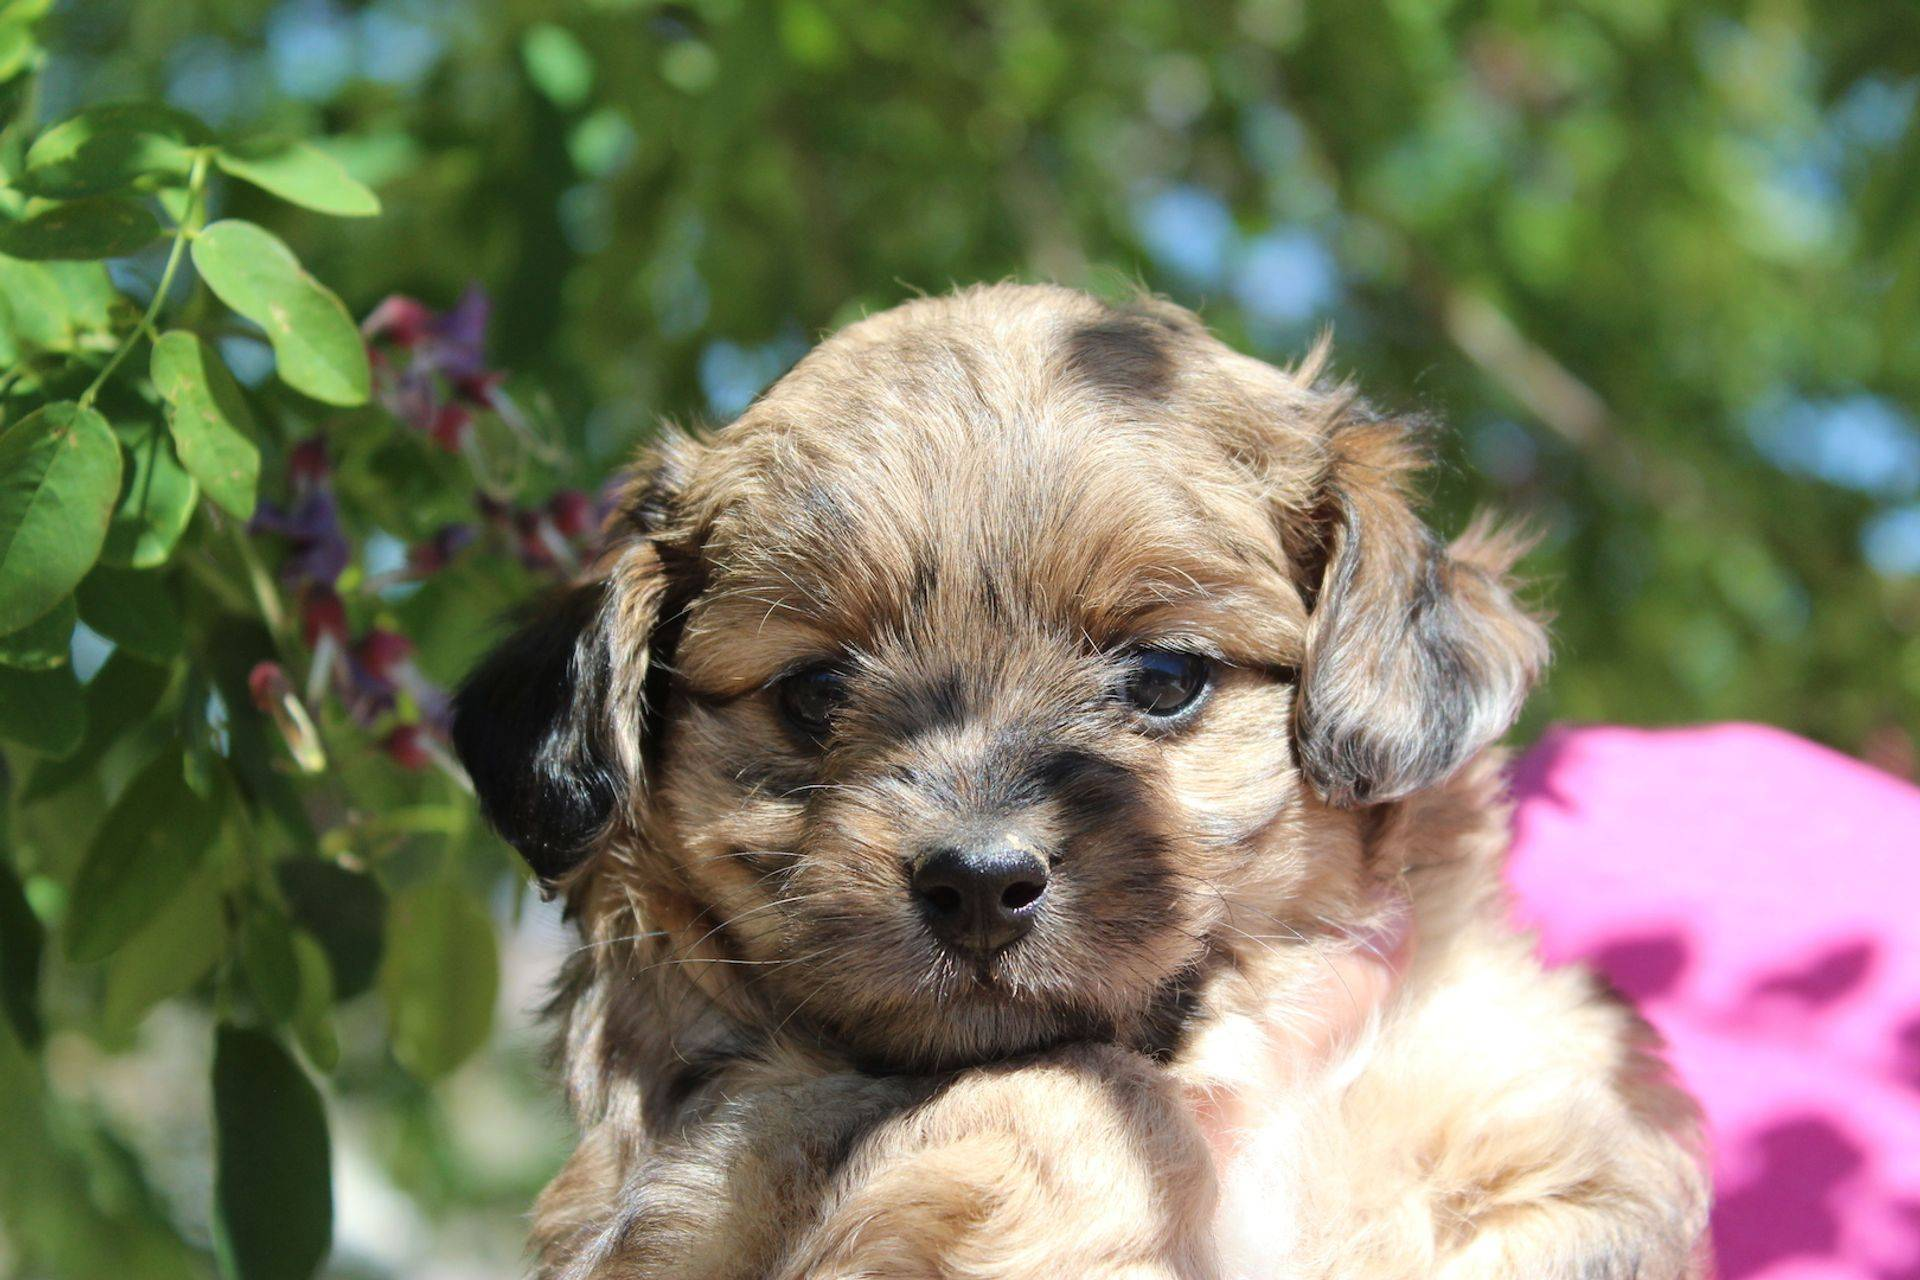 sable merle aussiedoodle puppy from cafeaulaitaussiedoodles